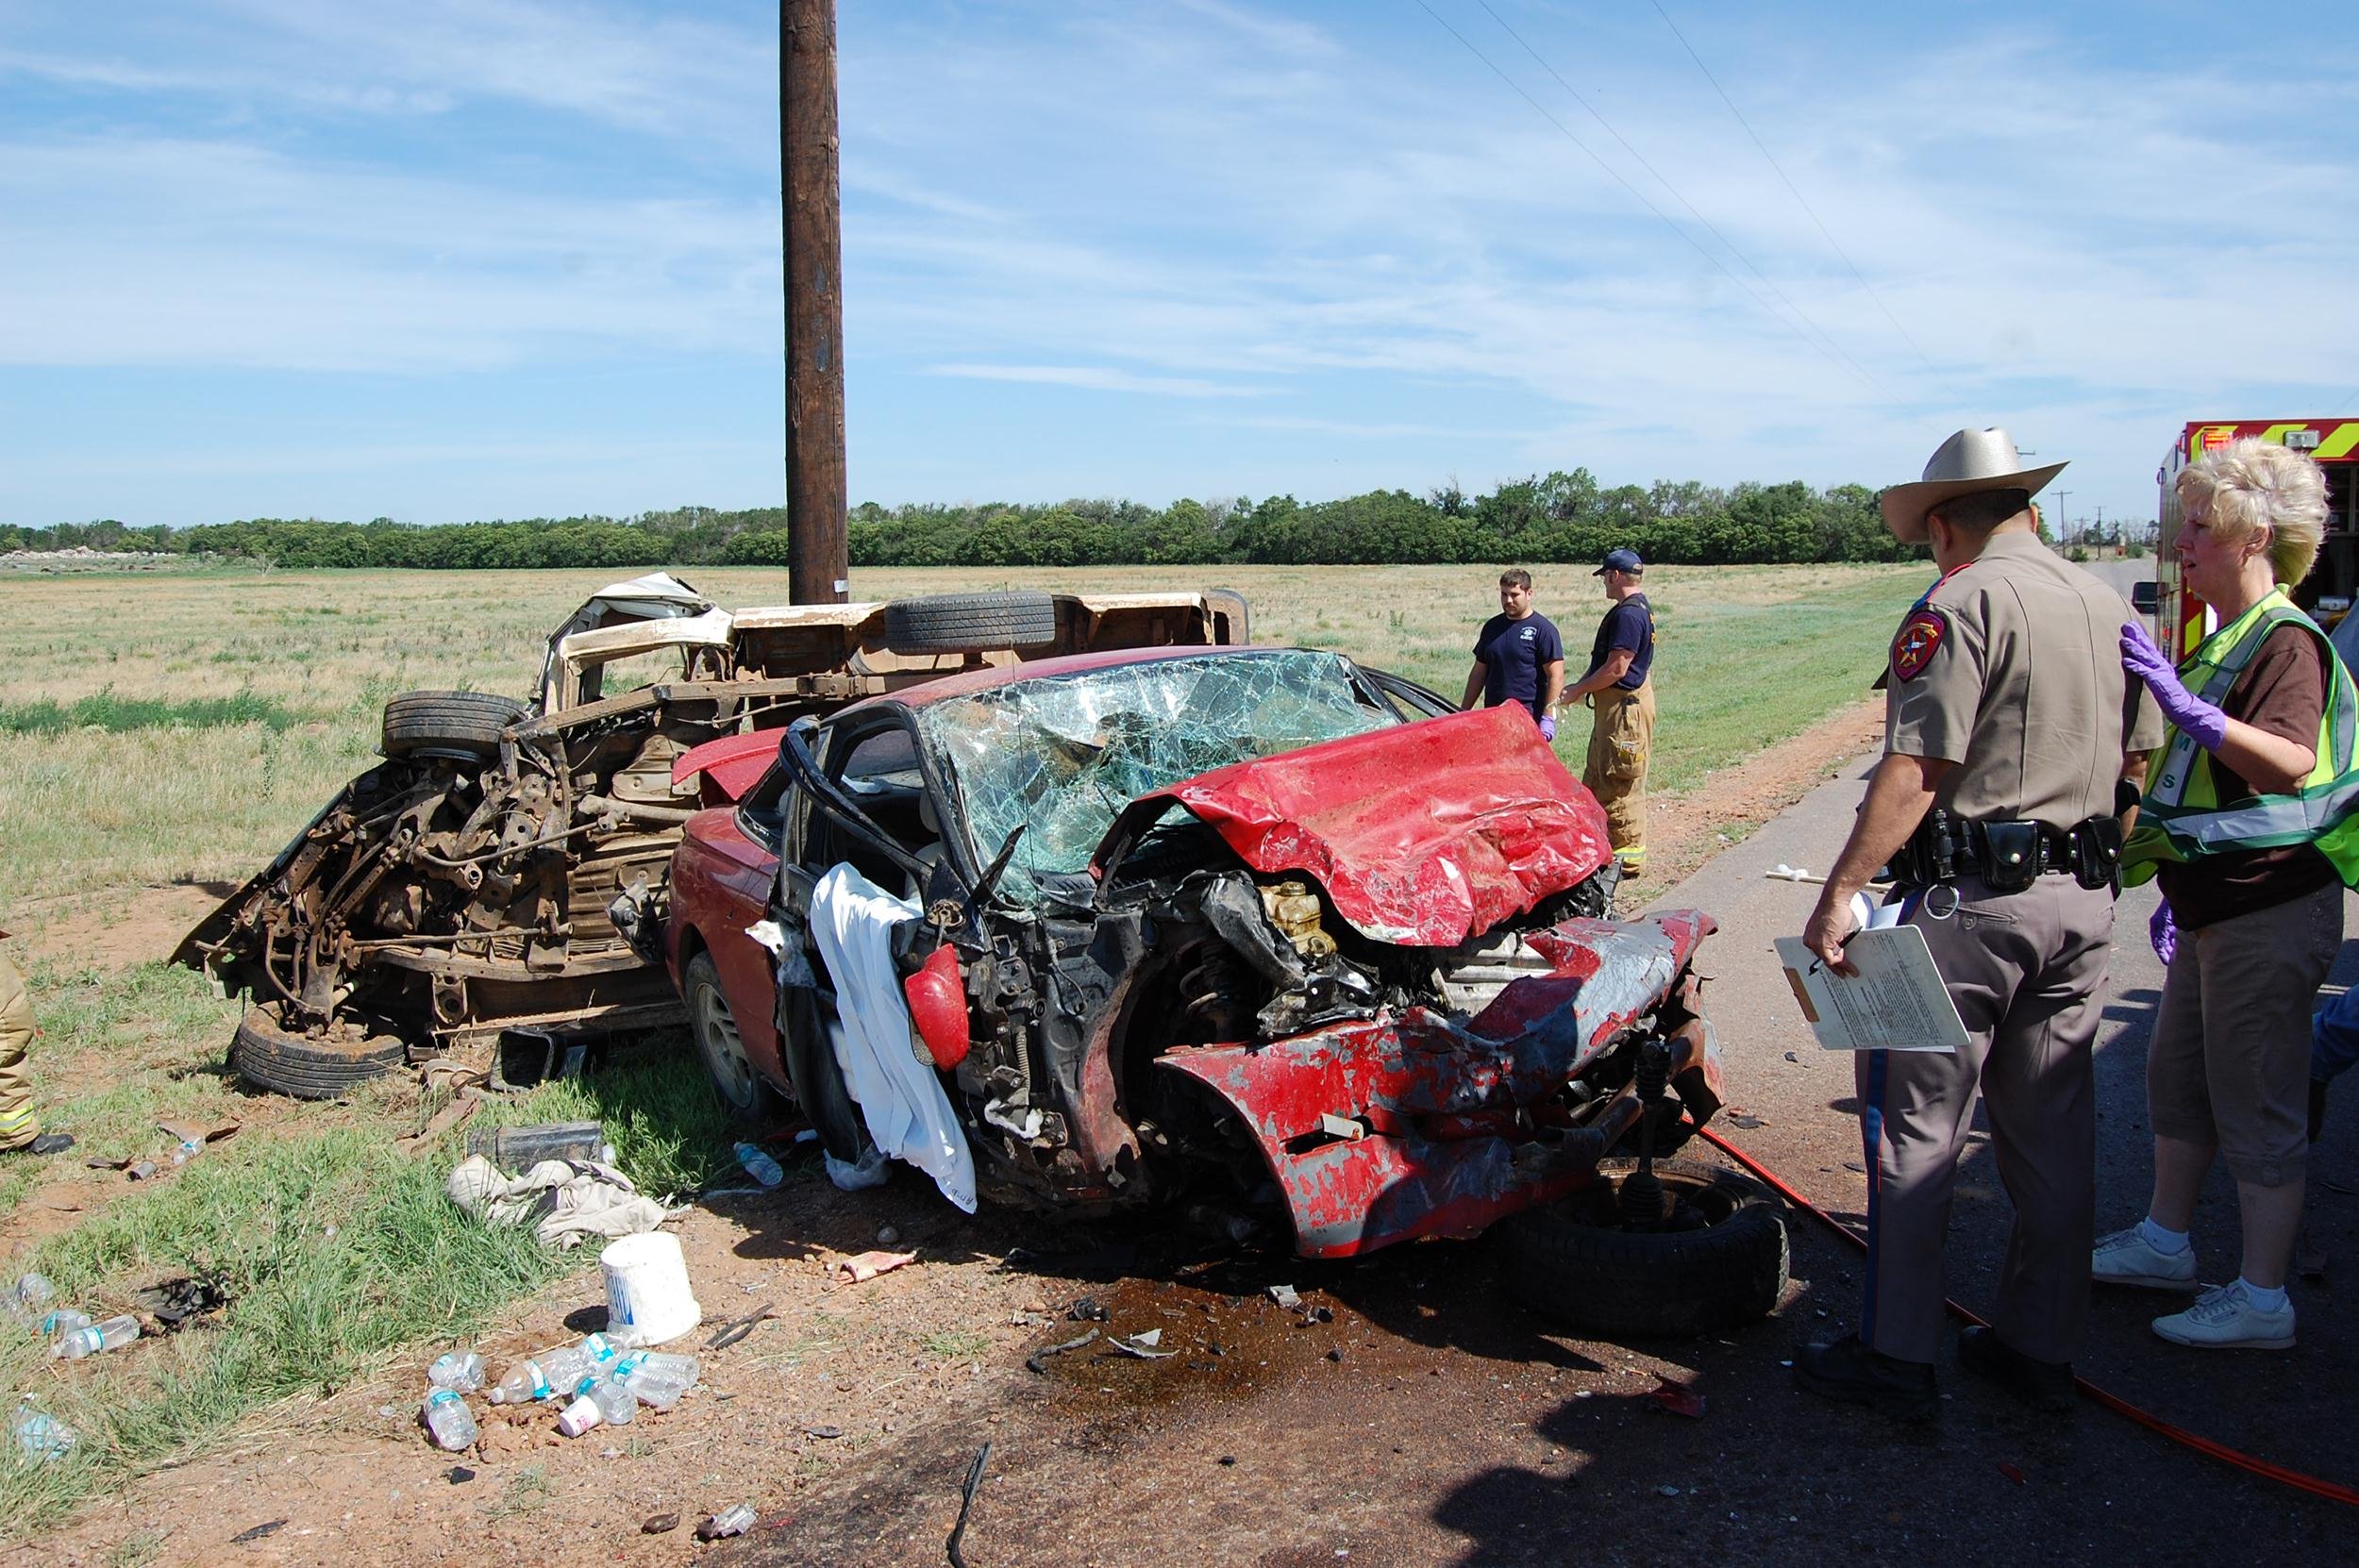 Image: A North Texas husband and wife have died when their vehicles collided head-on near where both work